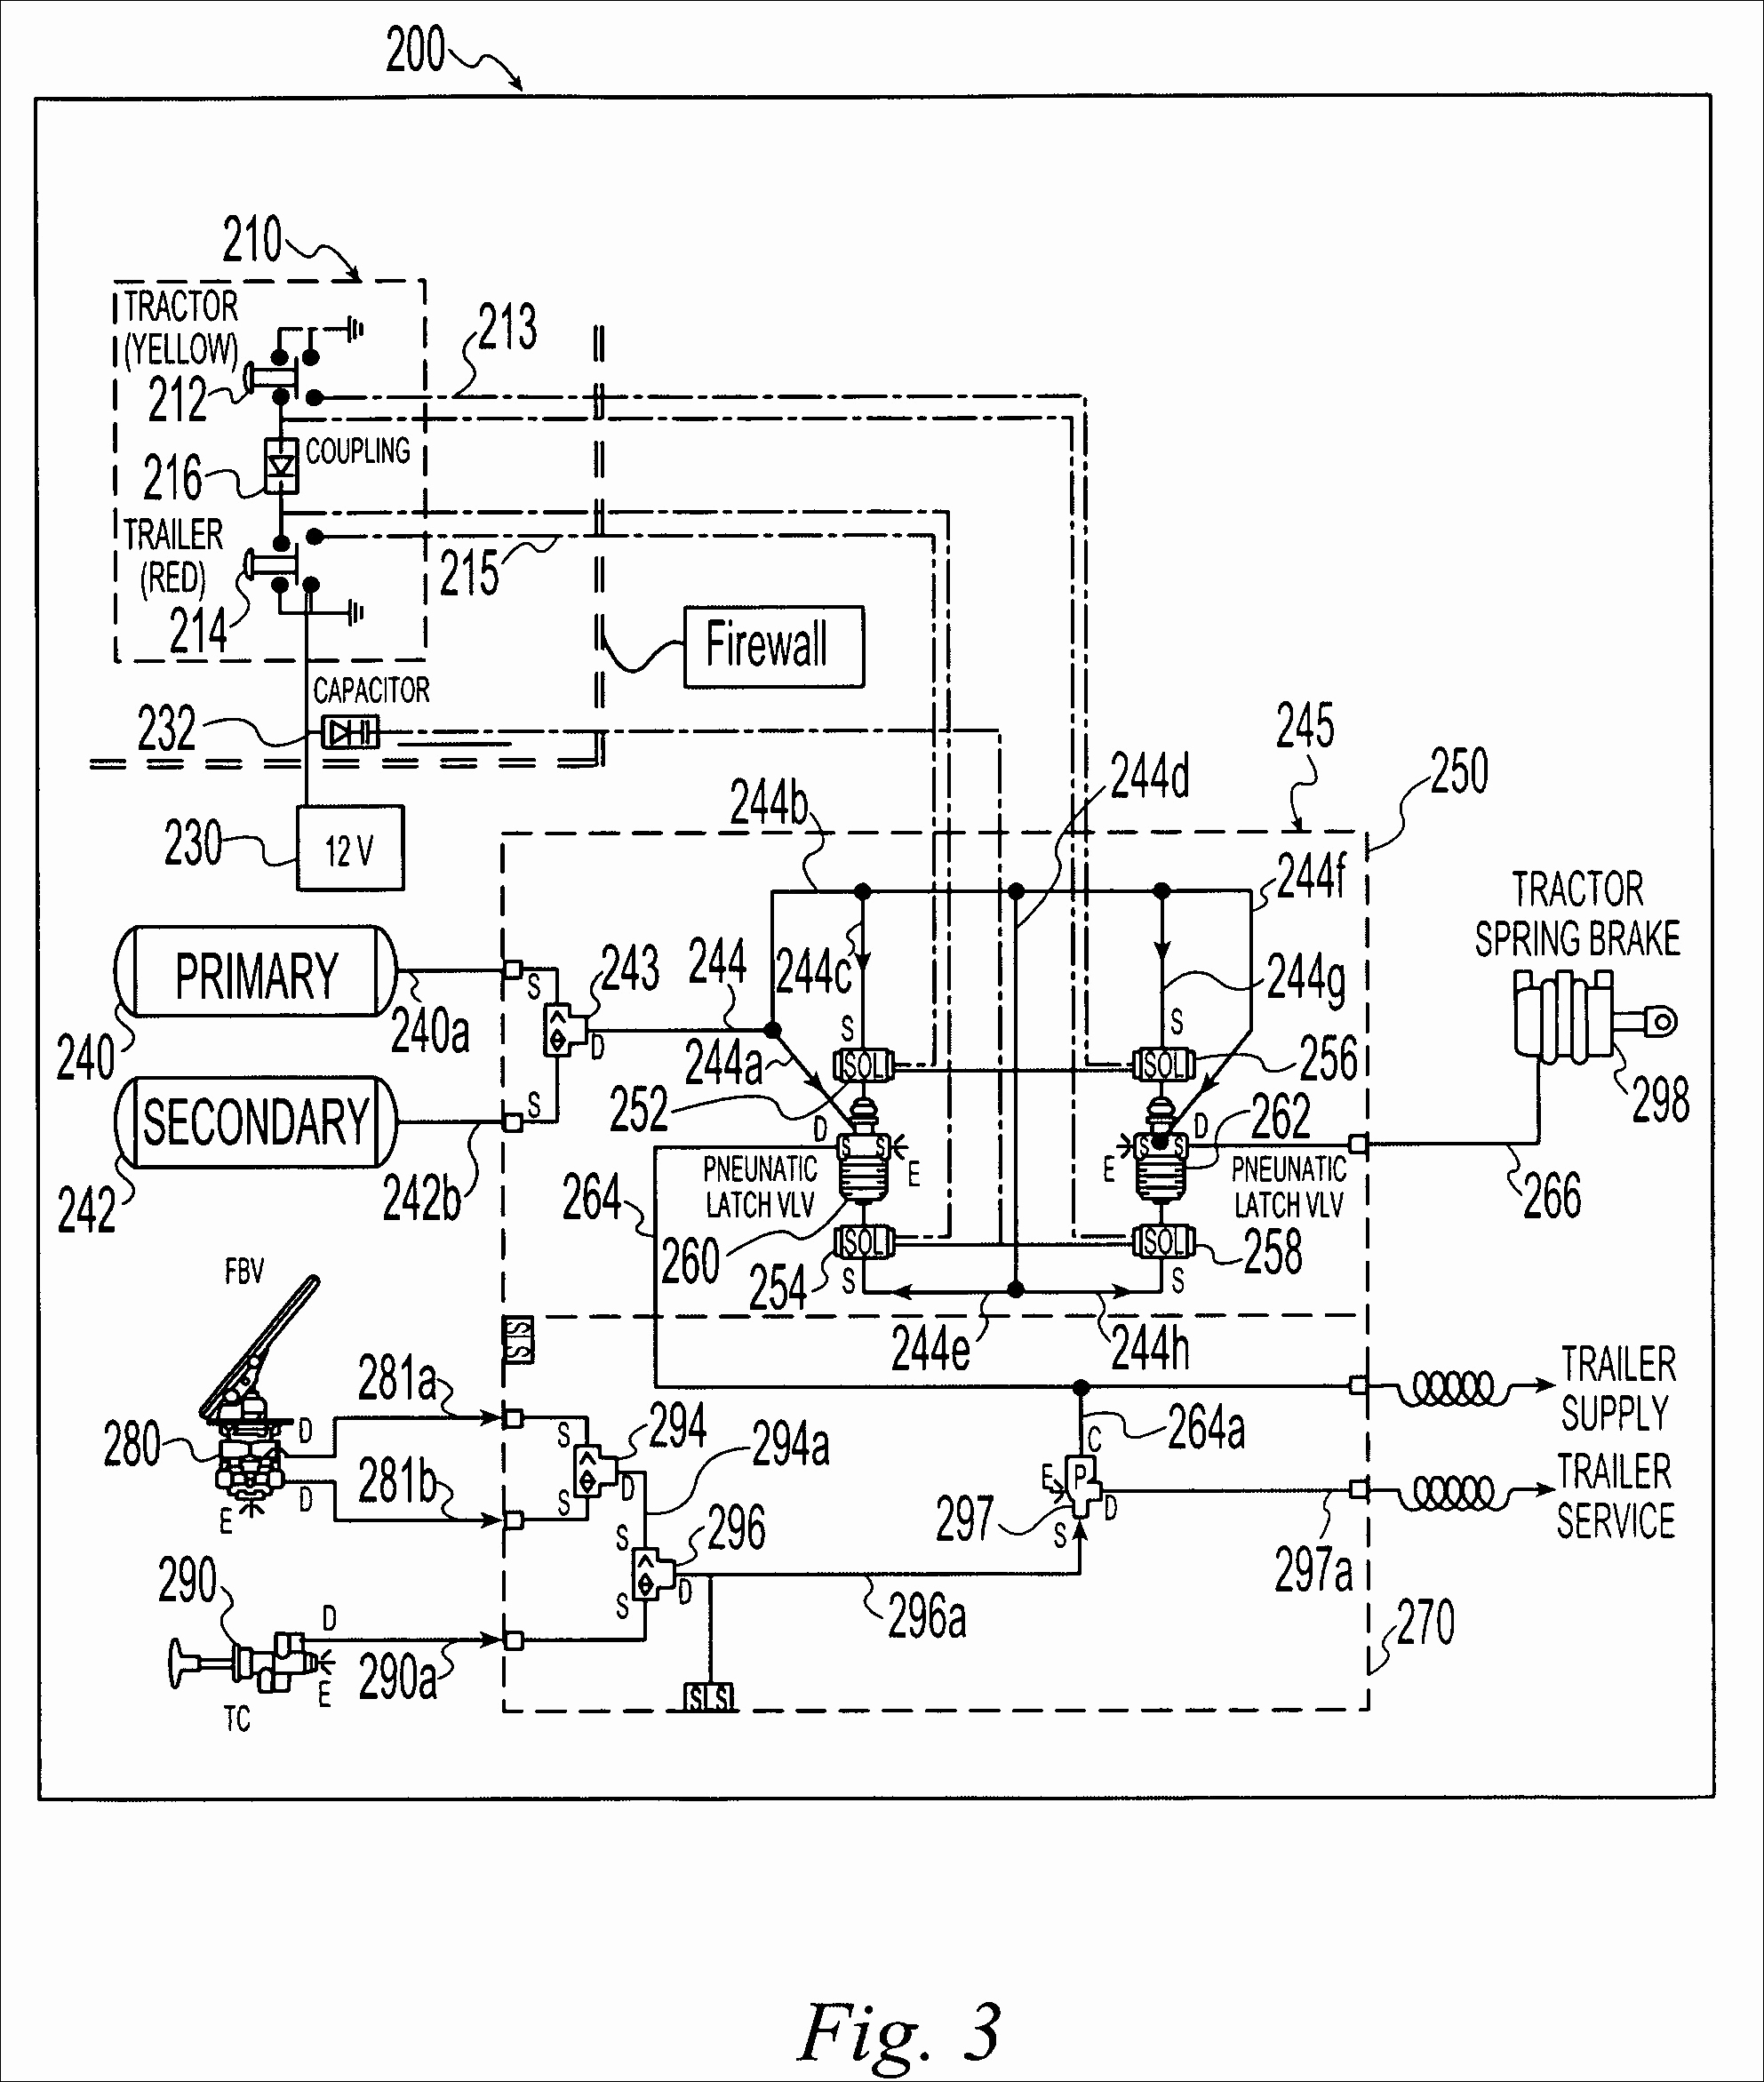 [DIAGRAM] 2008 Chevrolet Silverado 1500 Wiring Diagram